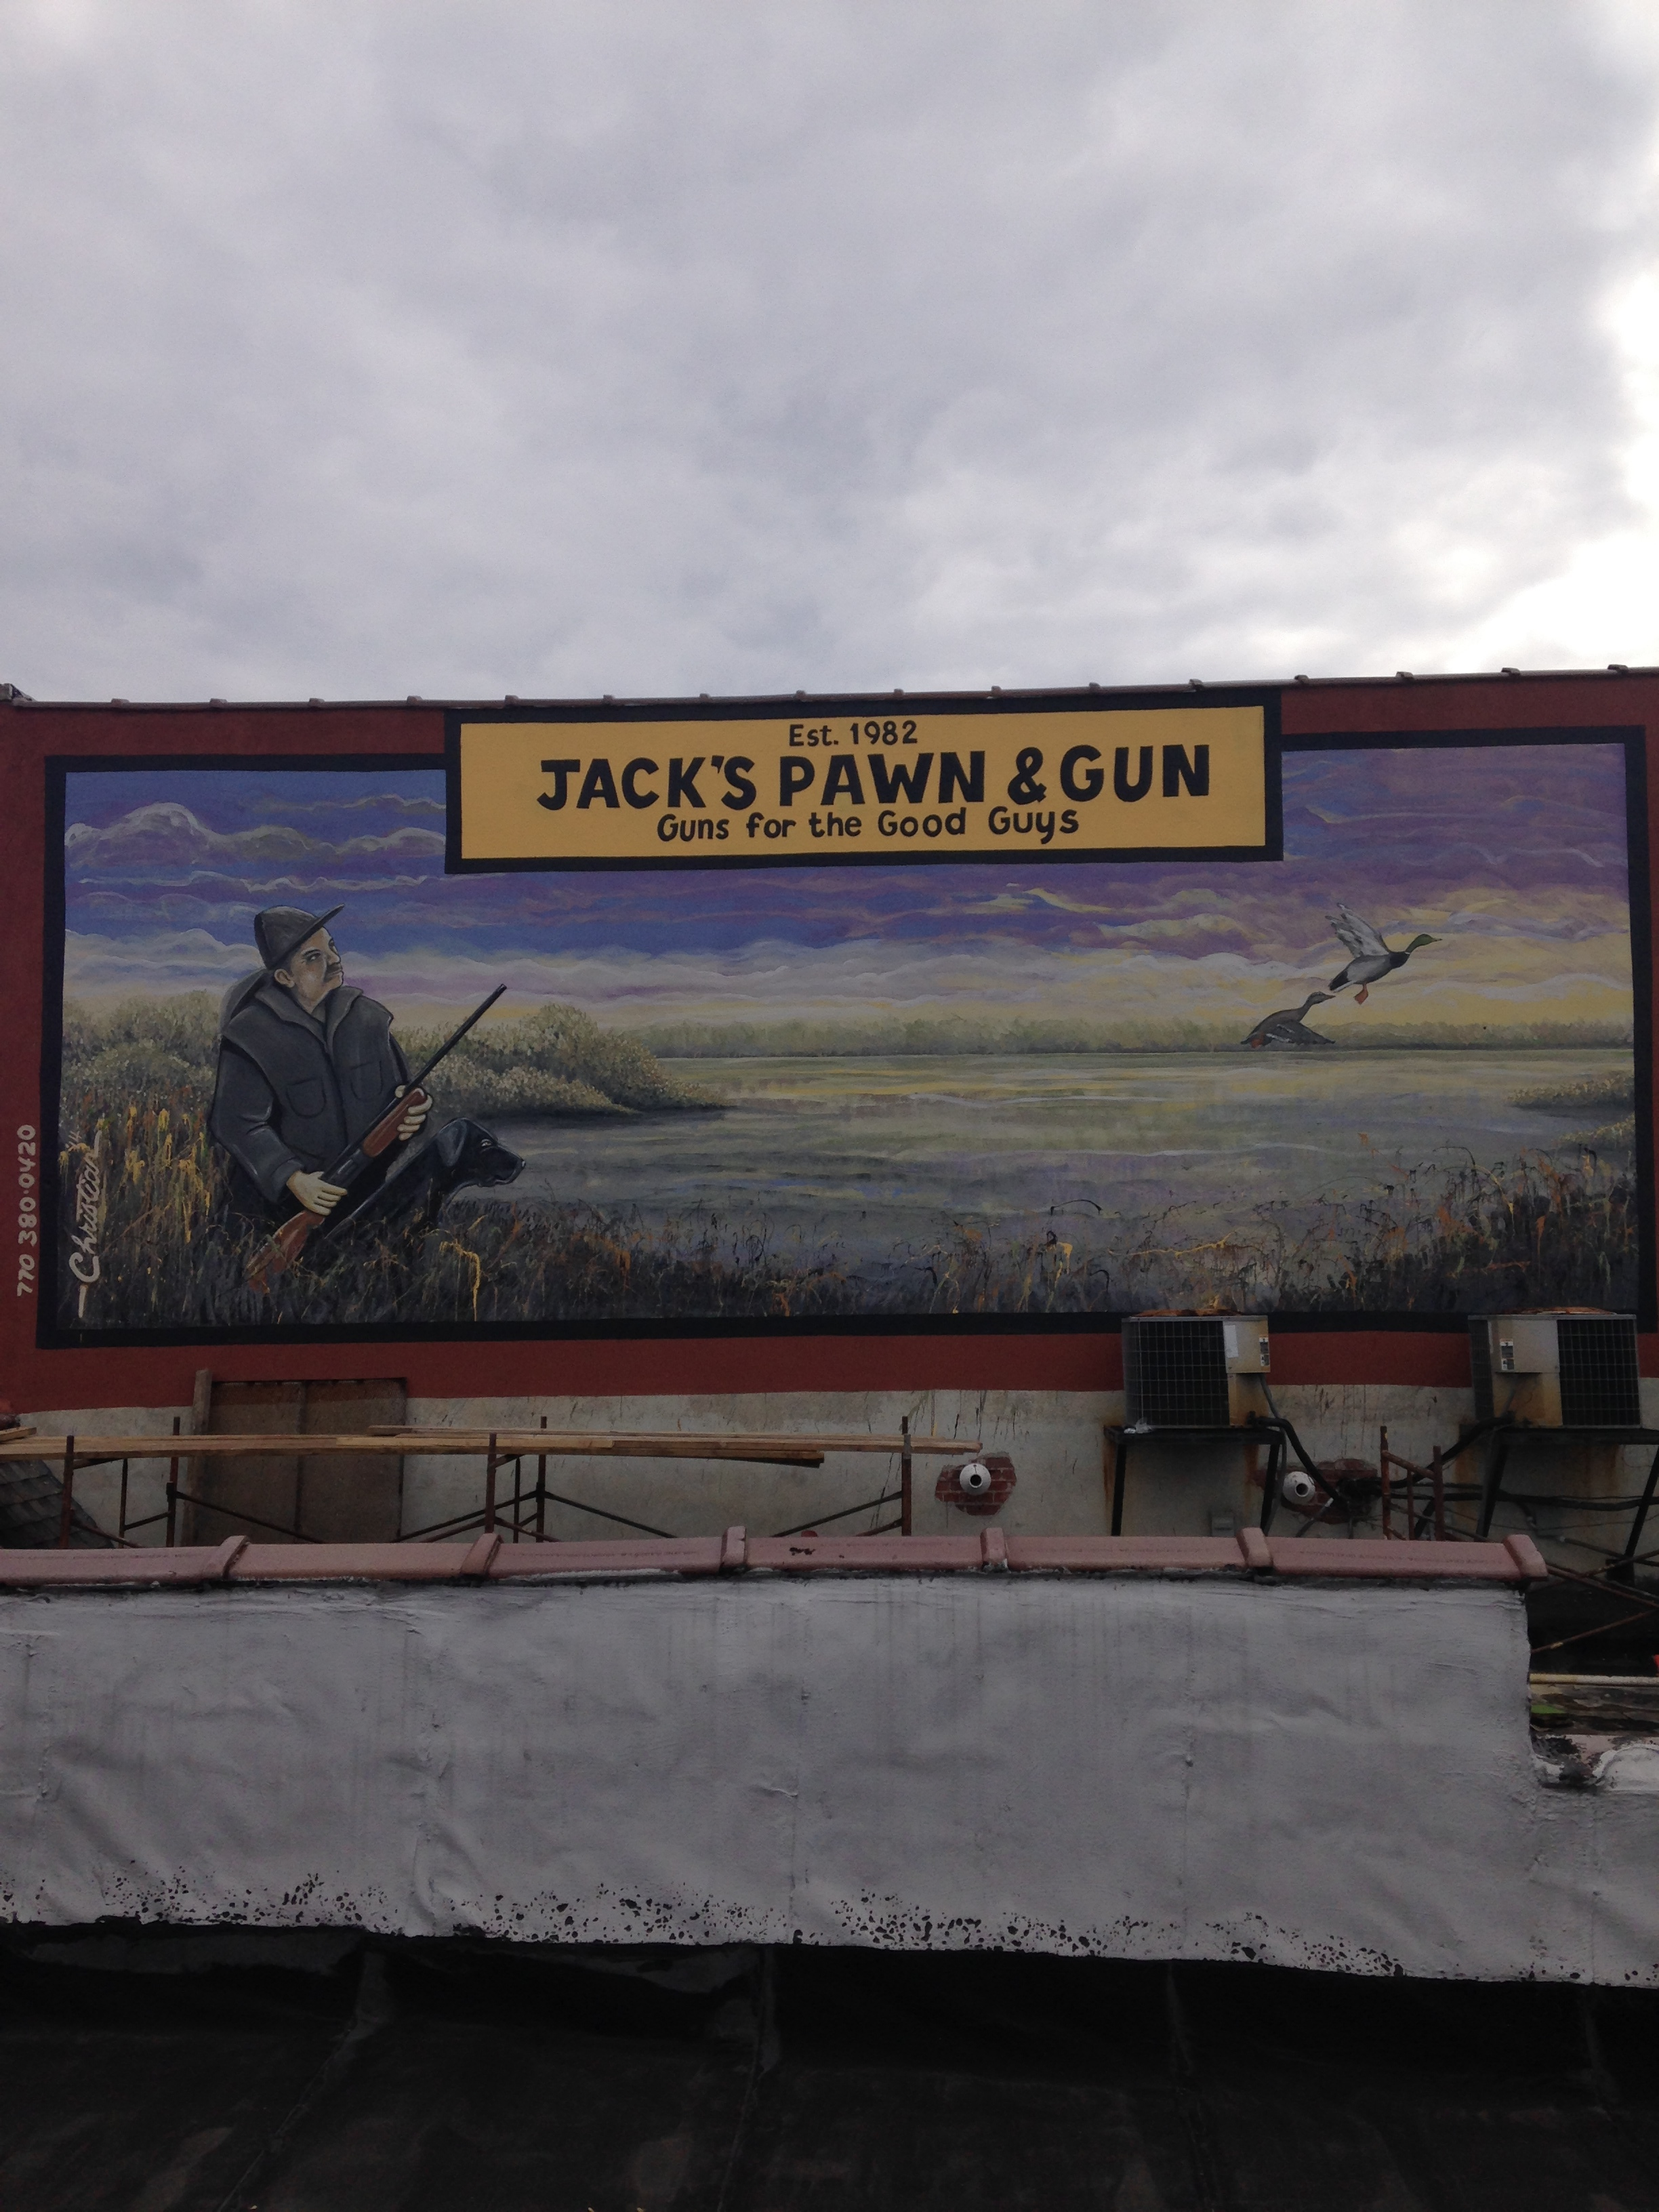 This is our second mural/sign for Jack's Pawn in the city of Dalton, Ga. It's a 16'x36' mural on the second floor of his building. It was painted in the winter of 2014.